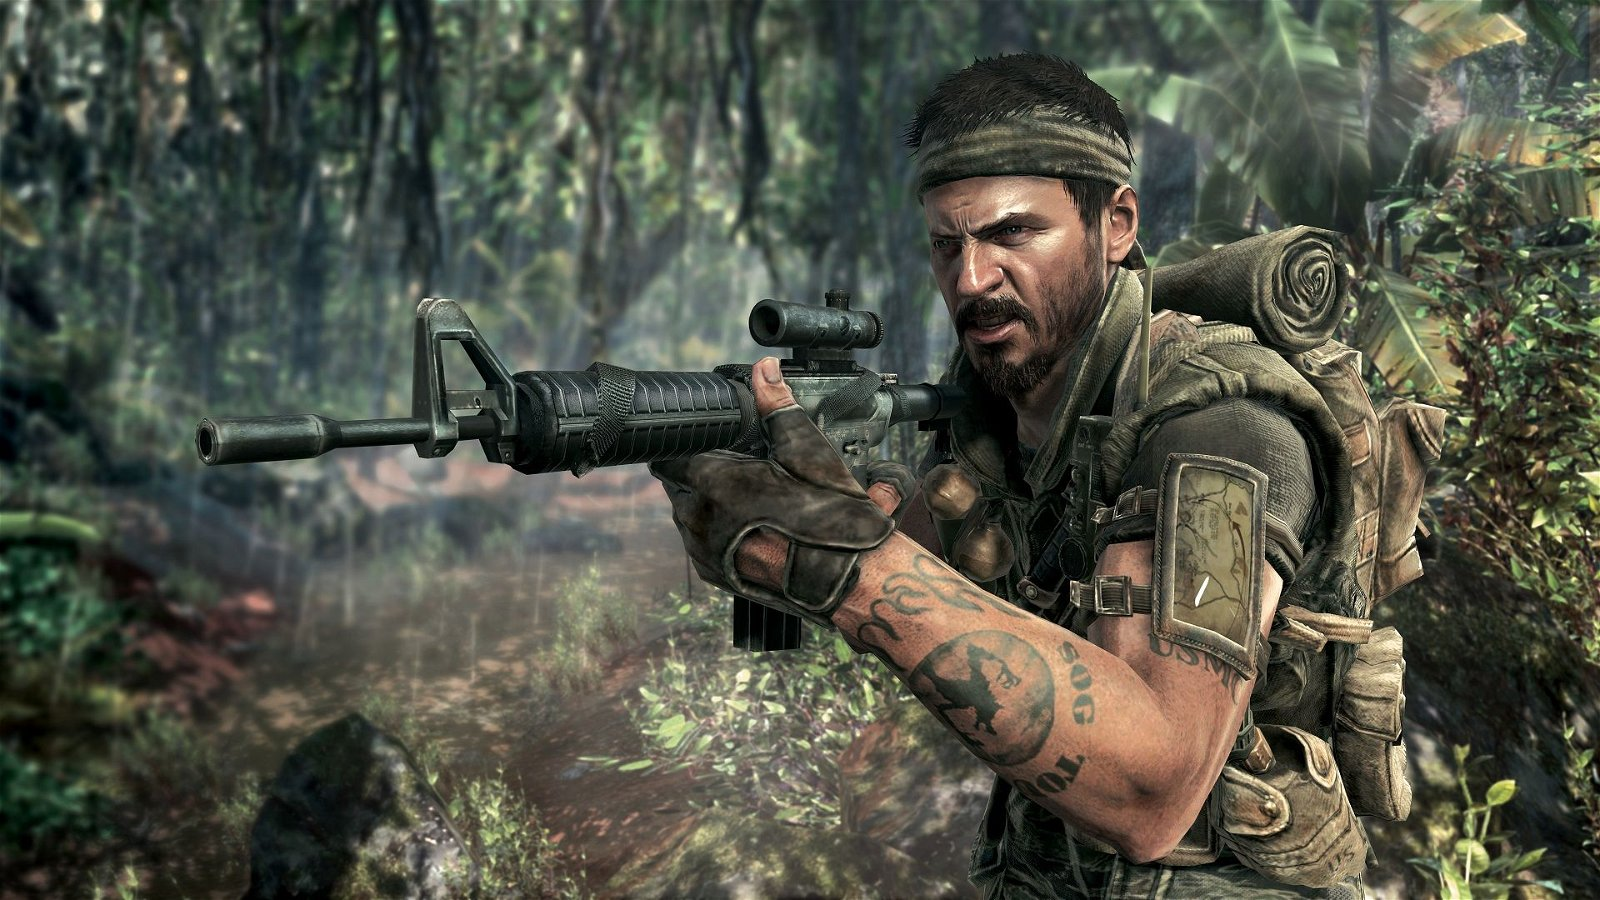 Report: Next Call of Duty Game Called Black Ops Cold War